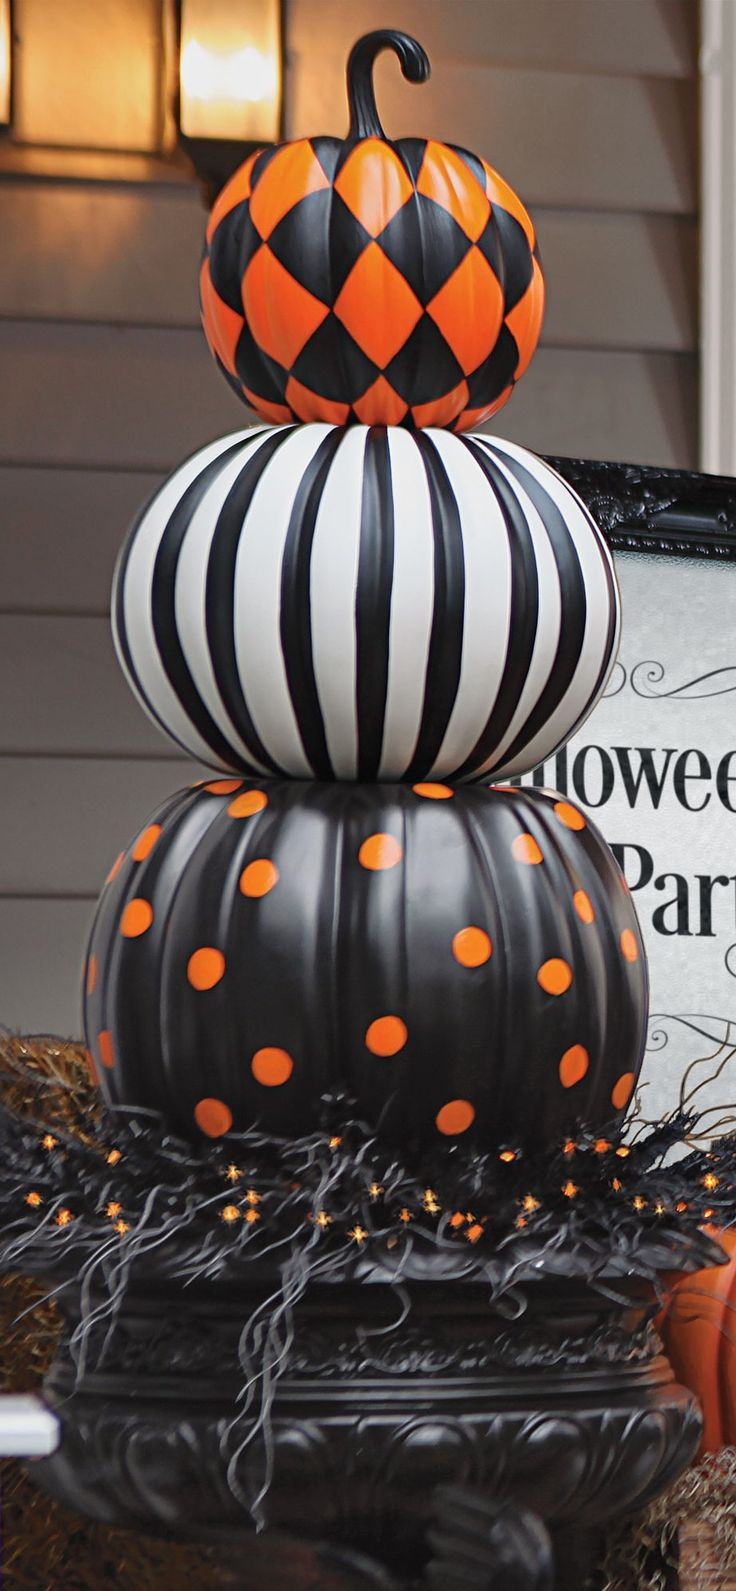 best 25 halloween designs ideas on pinterest halloween halloween pumpkins and pumpkin carving ideas diy halloween - Halloween Design